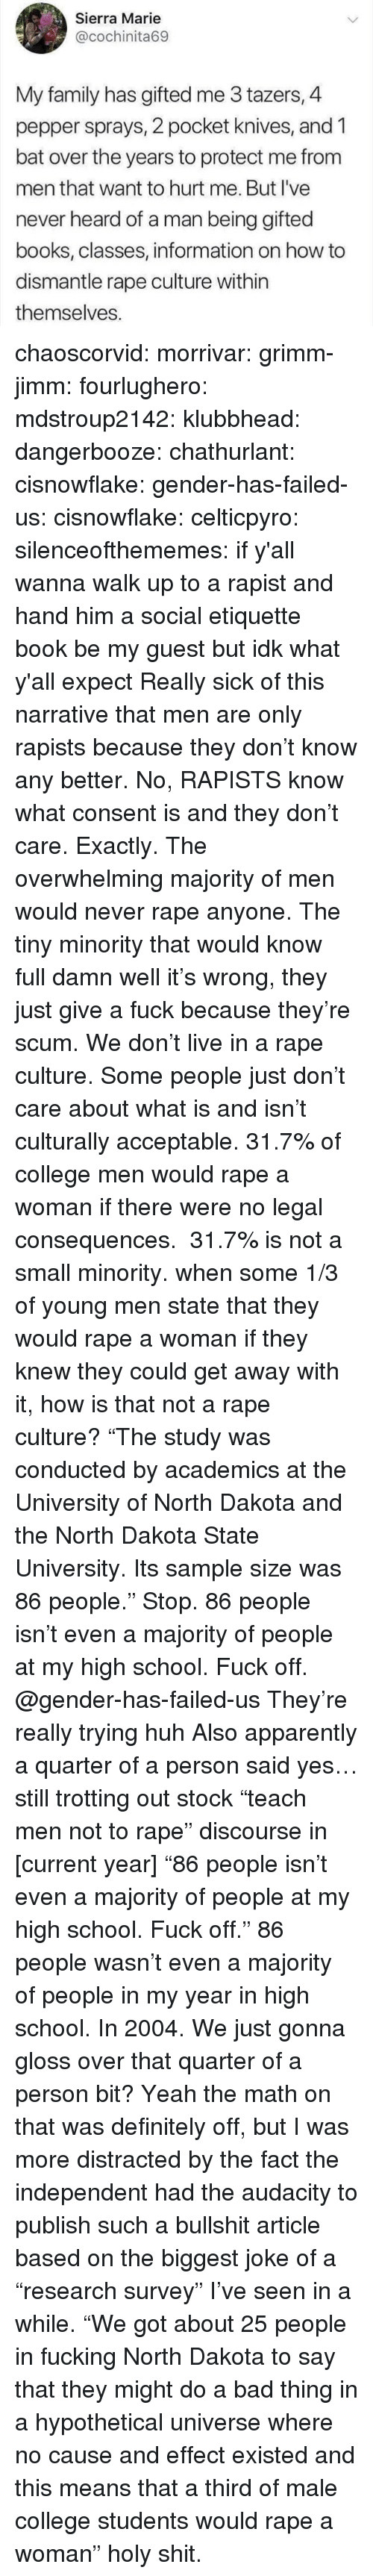 """Current Year: Sierra Marie  @cochinita69  My family has gifted me 3 tazers, 4  pepper sprays, 2 pocket knives, and 1  bat over the years to protect me from  men that want to hurt me. But I've  never heard of a man being gifted  books, classes, information on how to  dismantle rape culture within  themselves chaoscorvid:  morrivar: grimm-jimm:  fourlughero:  mdstroup2142:  klubbhead:   dangerbooze:   chathurlant:  cisnowflake:   gender-has-failed-us:   cisnowflake:  celticpyro:  silenceofthememes: if y'all wanna walk up to a rapist and hand him a social etiquette book be my guest but idk what y'all expect  Really sick of this narrative that men are only rapists because they don't know any better. No, RAPISTS know what consent is and they don't care.   Exactly. The overwhelming majority of men would never rape anyone. The tiny minority that would know full damn well it's wrong, they just give a fuck because they're scum. We don't live in a rape culture. Some people just don't care about what is and isn't culturally acceptable.  31.7% of college men would rape a woman if there were no legal consequences. 31.7% is not a small minority. when some 1/3 of young men state that they would rape a woman if they knew they could get away with it, how is that not a rape culture?   """"The study was conducted by academics at the University of North Dakota and the North Dakota State University. Its sample size was 86 people."""" Stop.   86 people isn't even a majority of people at my high school. Fuck off.  @gender-has-failed-us   They're really trying huh     Also apparently a quarter of a person said yes…  still trotting out stock """"teach men not to rape"""" discourse in [current year]    """"86 people isn't even a majority of people at my high school. Fuck off."""" 86 people wasn't even a majority of people in my year in high school. In 2004.   We just gonna gloss over that quarter of a person bit?  Yeah the math on that was definitely off, but I was more distracted by the fact the independent """